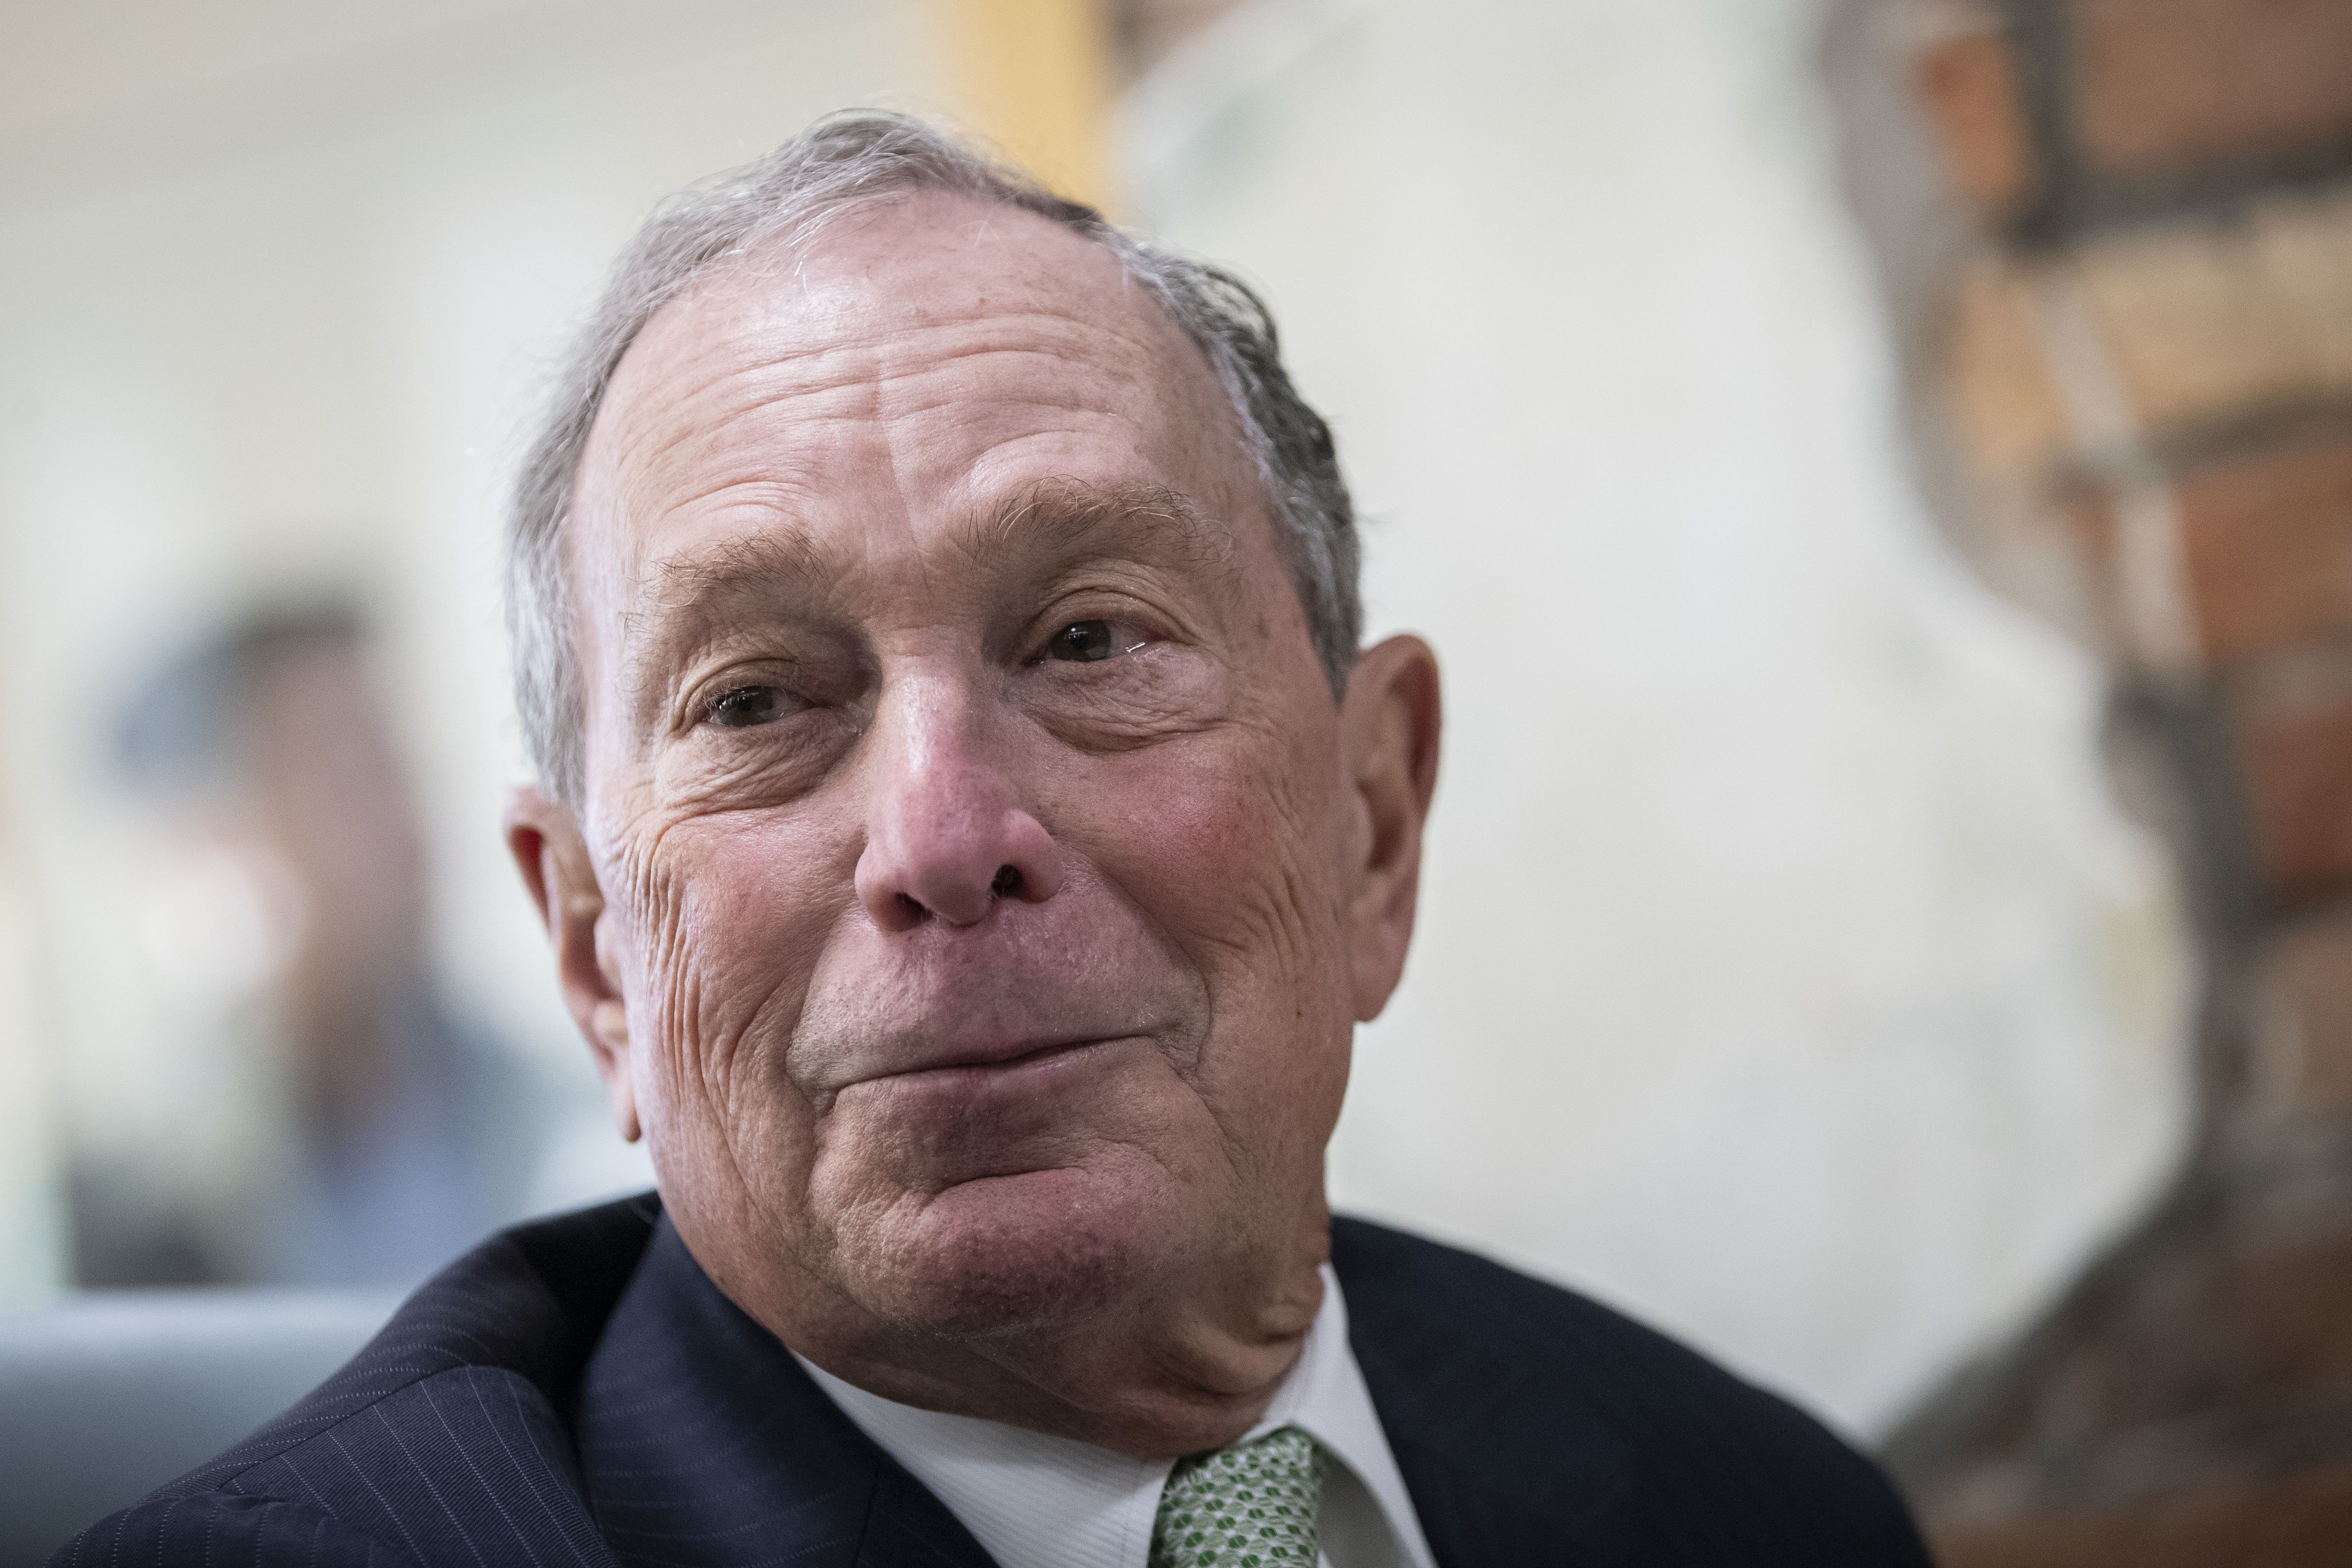 Bloomberg Has Spent Over $200 Million on 2020 Campaign